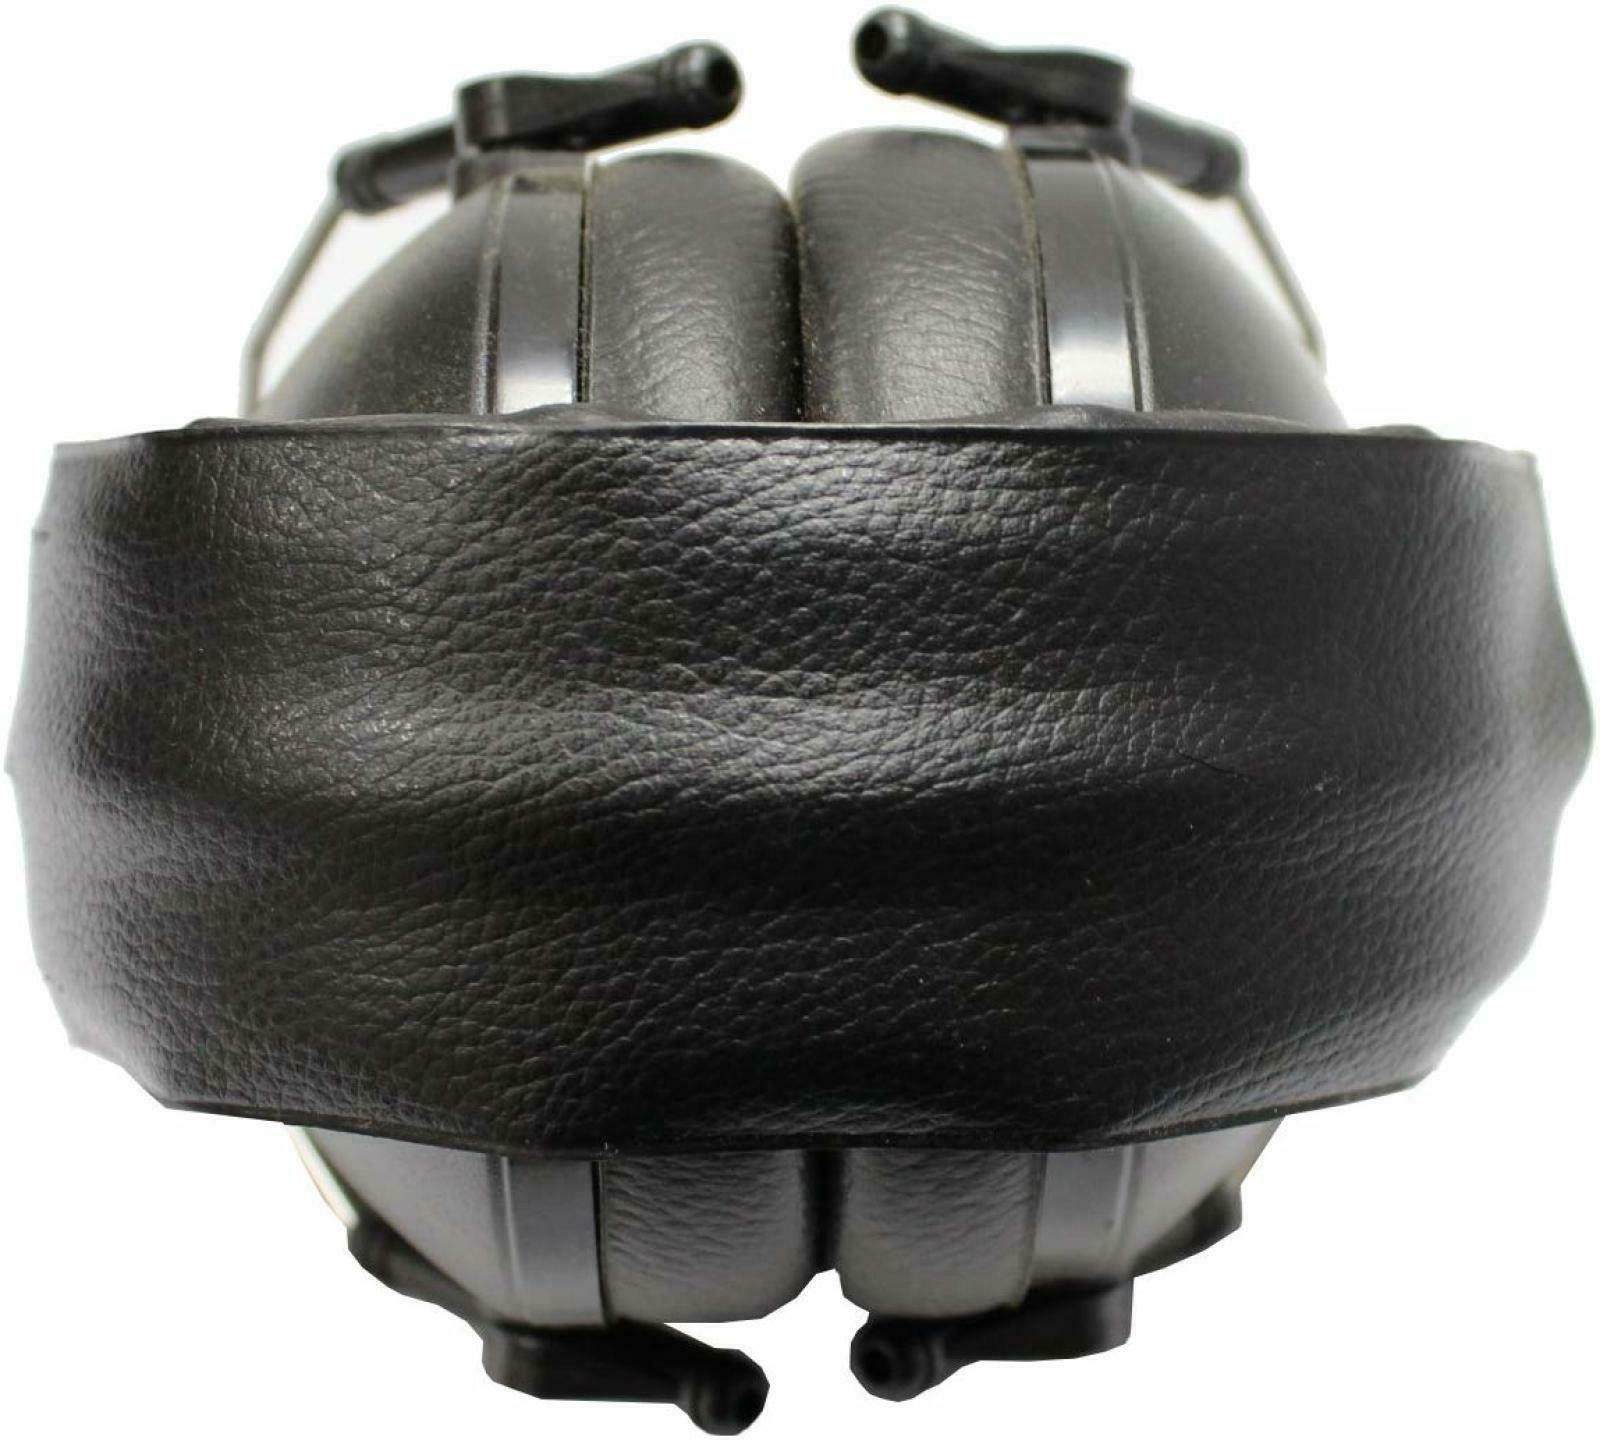 Noise Ear Muffs Hearing Shooting Safety Hunting